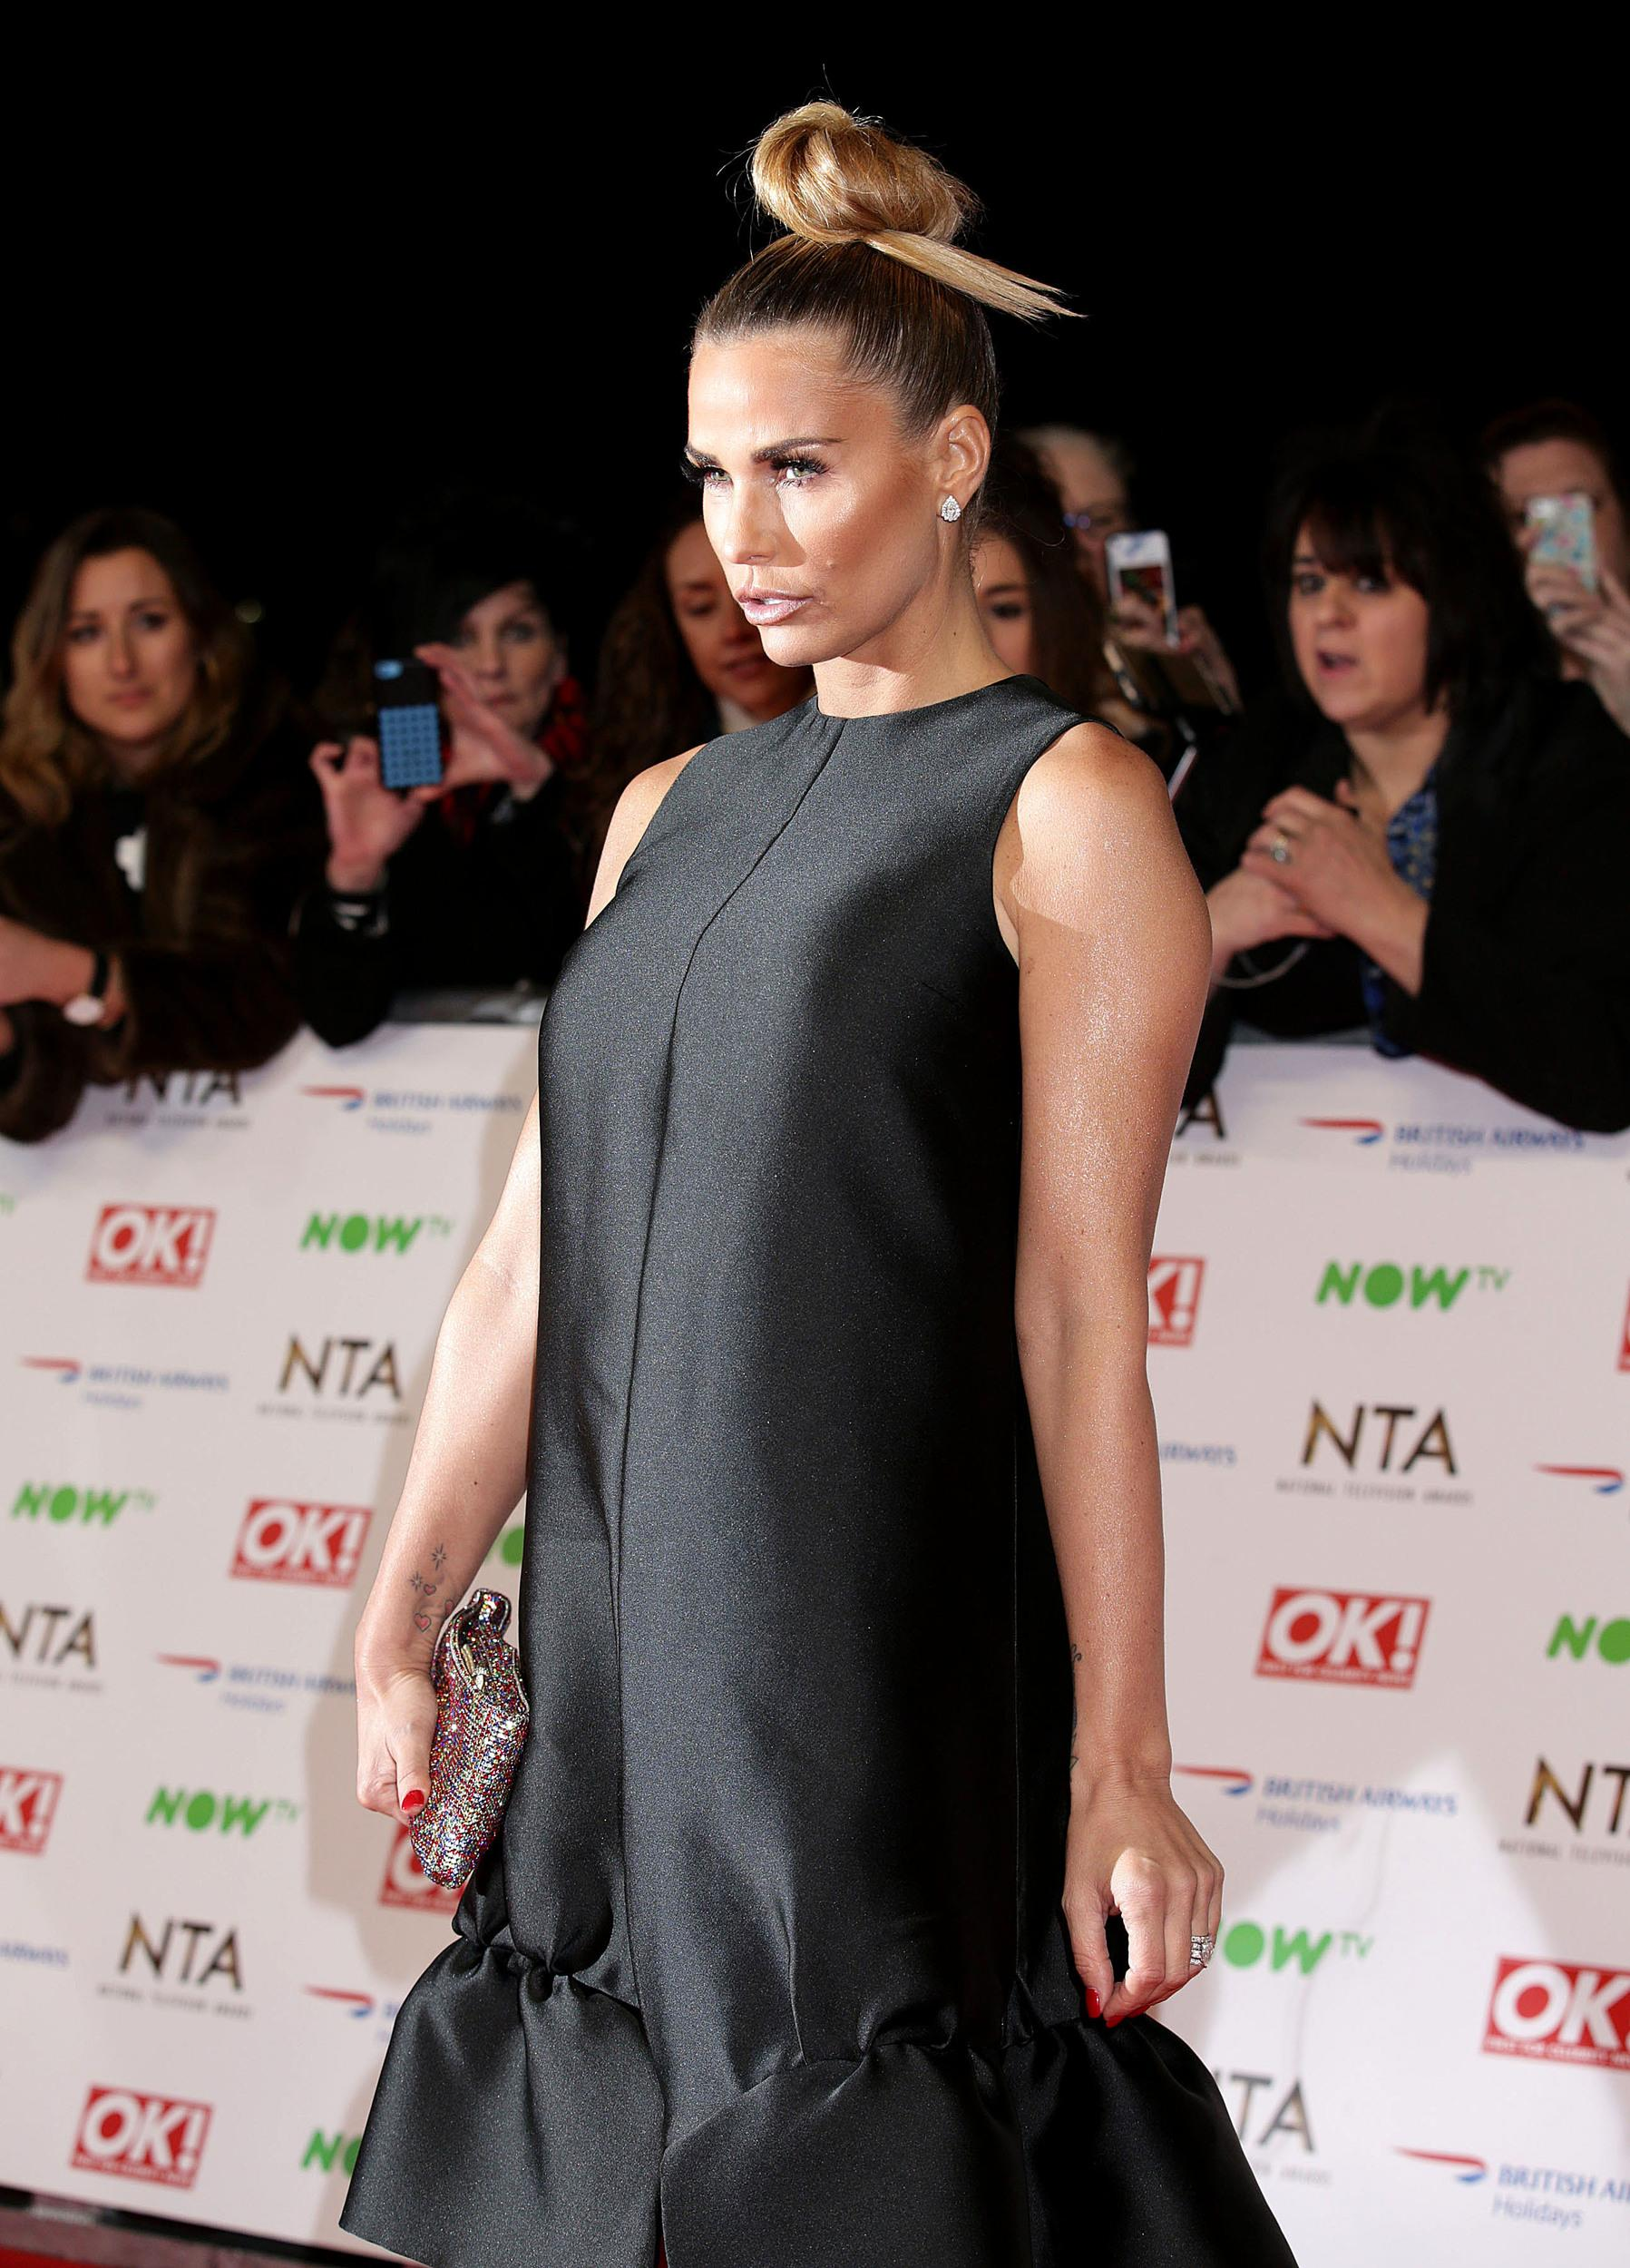 Katie Price arriving at the National Television Awards 2016 held at The O2 Arena in London. PRESS ASSOCIATION Photo. See PA story NTAs. Picture date: Wednesday January 20, 2016. Photo credit should read: Yui Mok/PA Wire